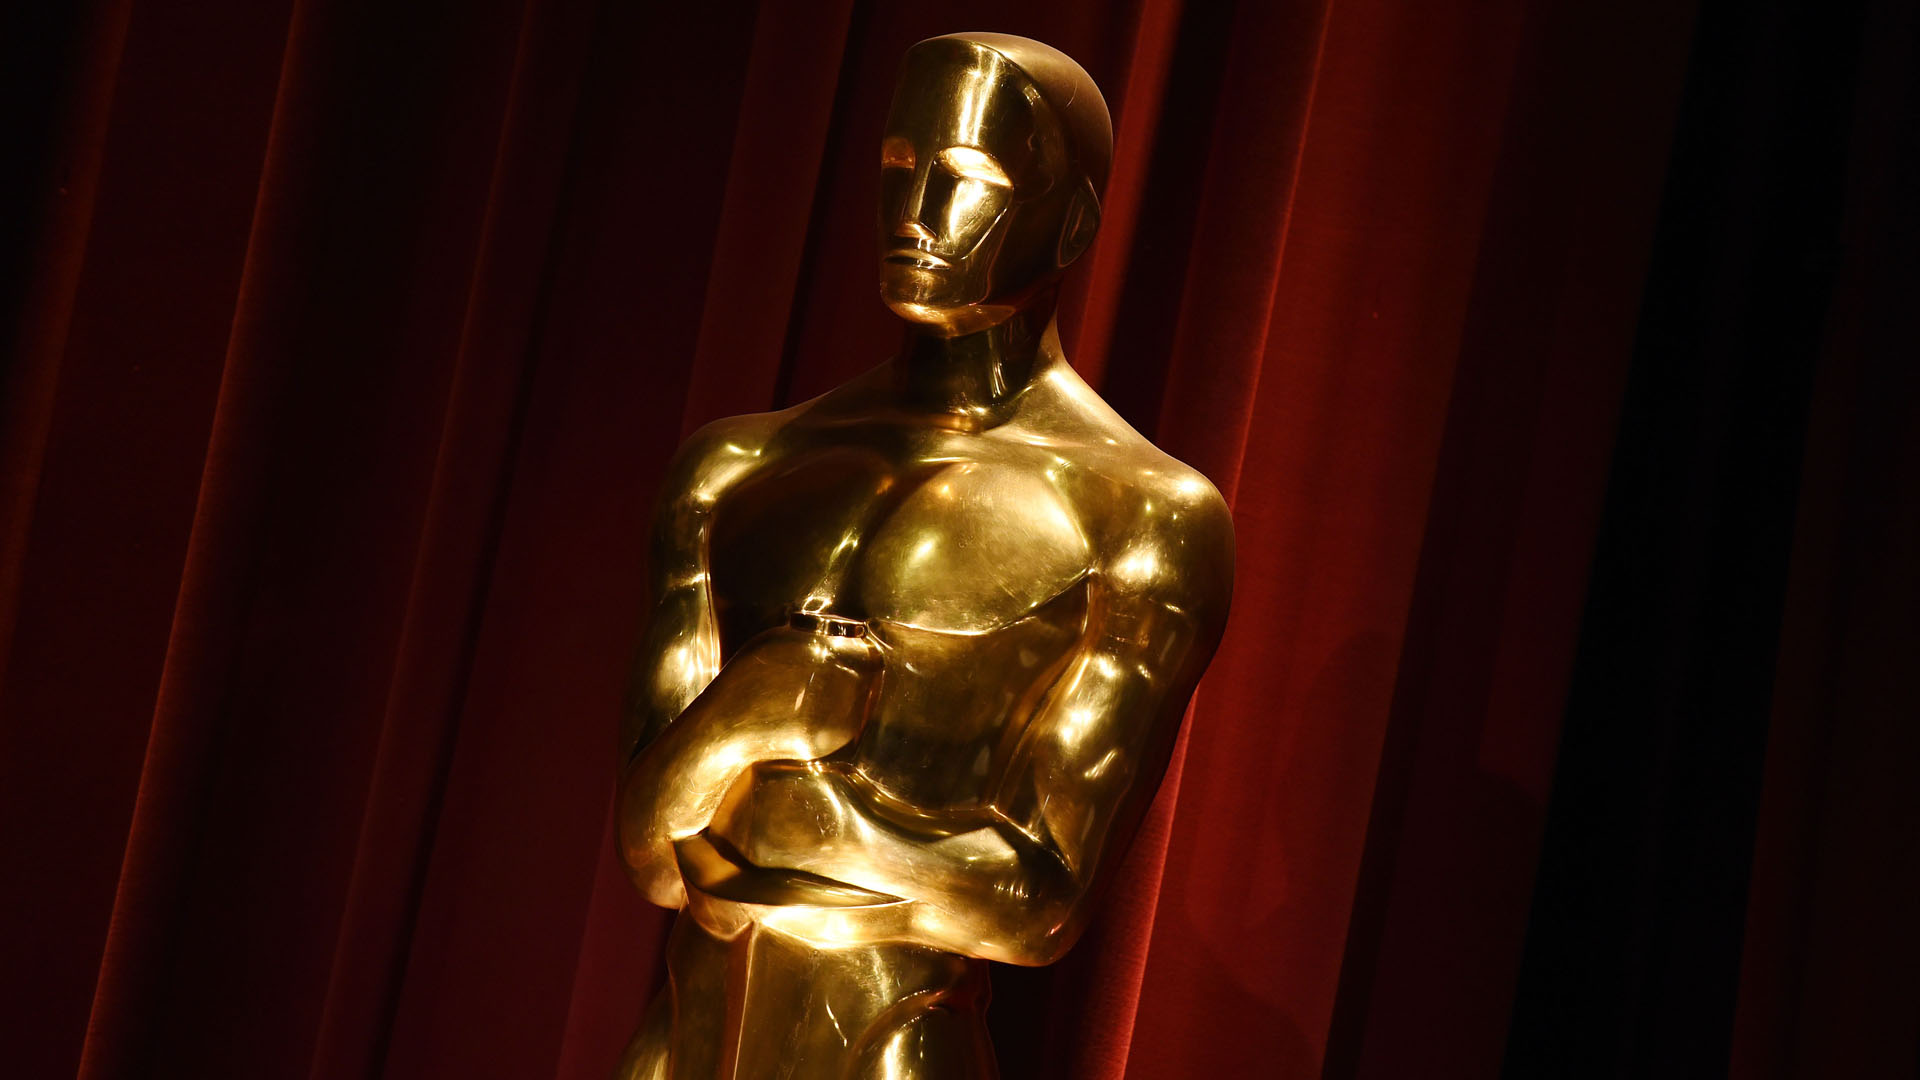 An Oscar statue is on display during the Academy Awards nominations on Jan. 14, 2016. (Credit: MARK RALSTON/AFP/Getty Images)